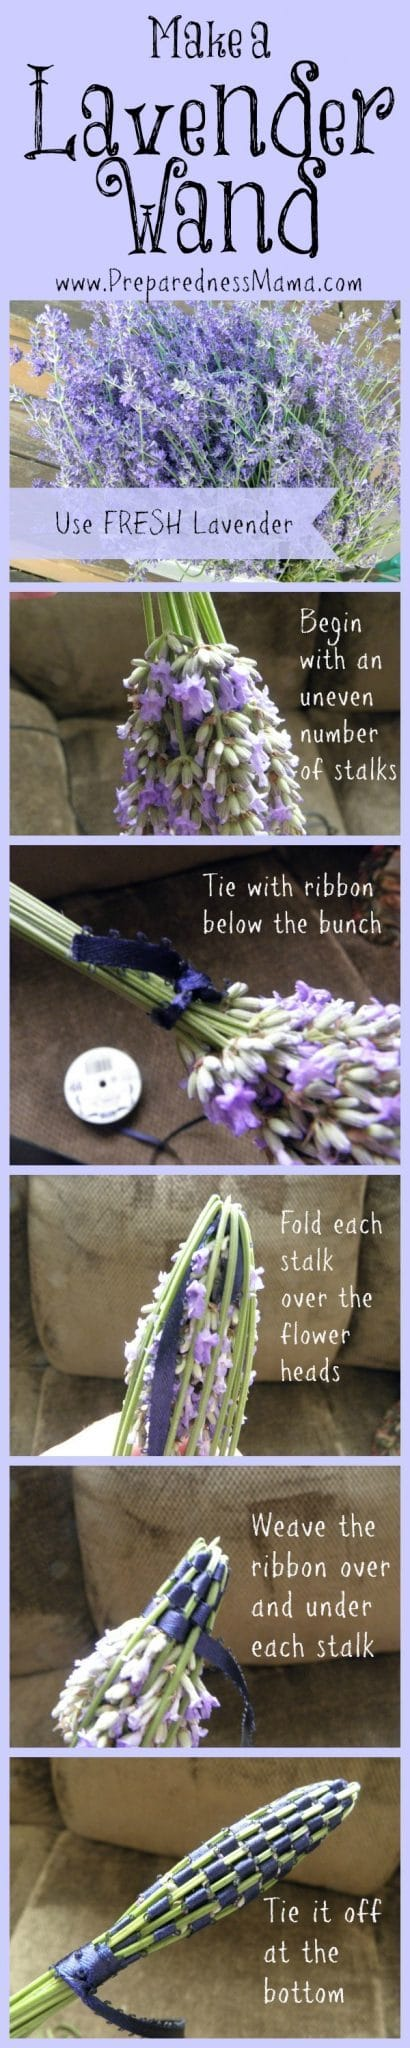 5 Useful and fun things to do with your lavender harvest - Make a lavender wand | PreparednessMama